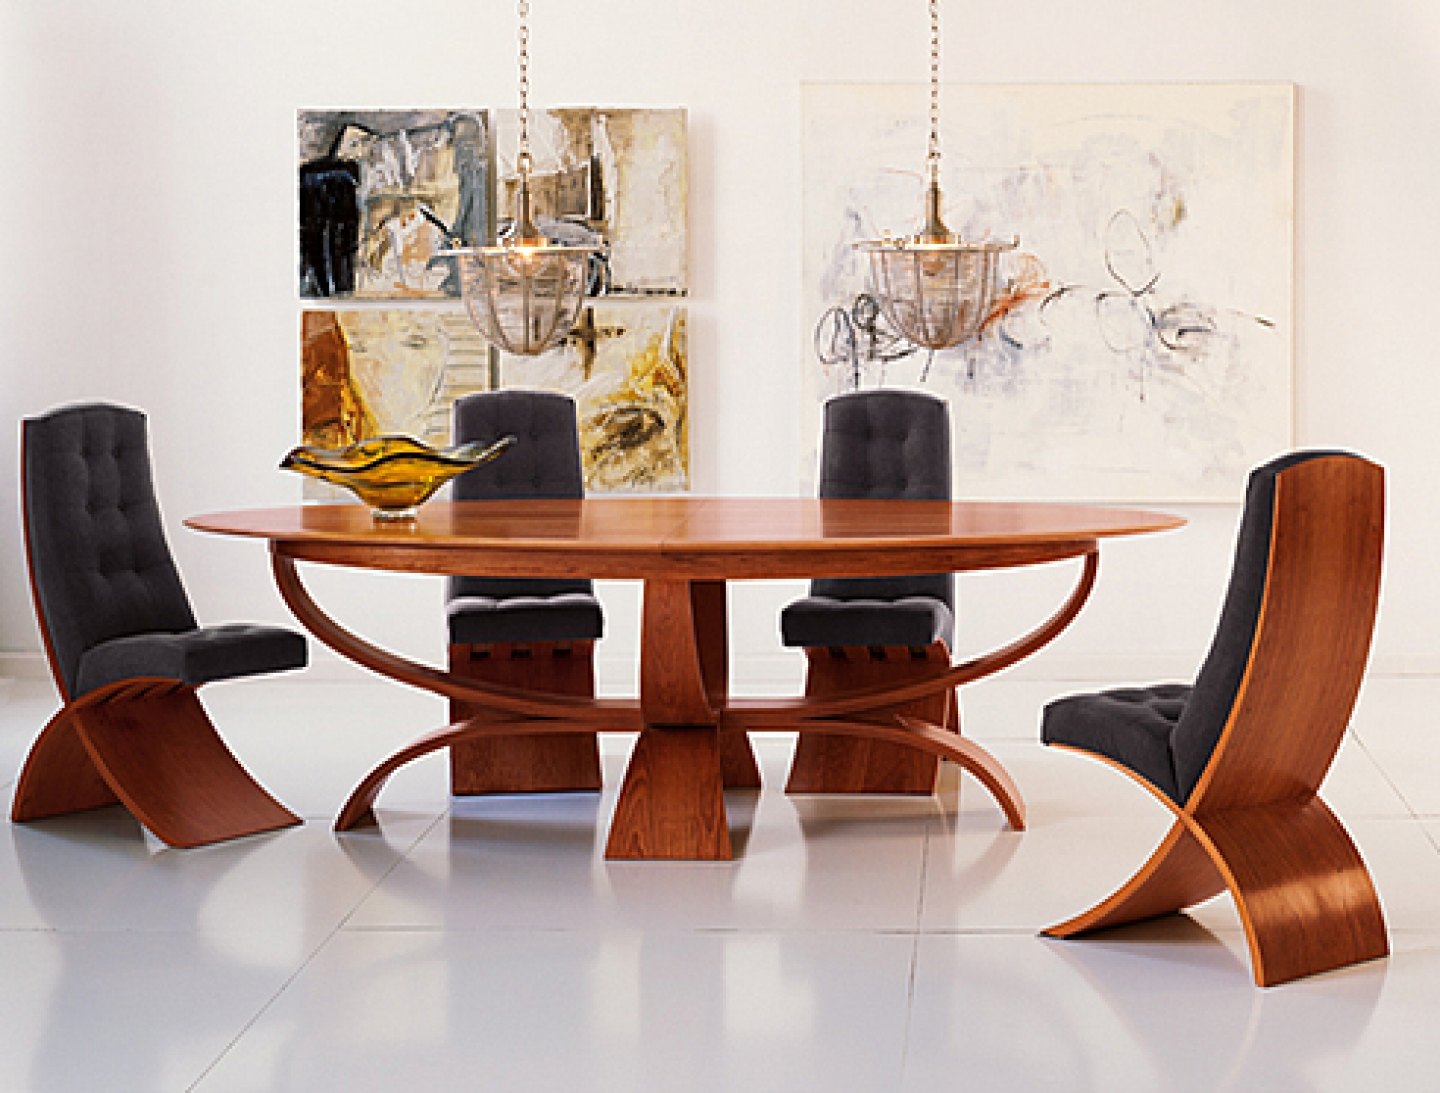 dining tables ideas photo - 2